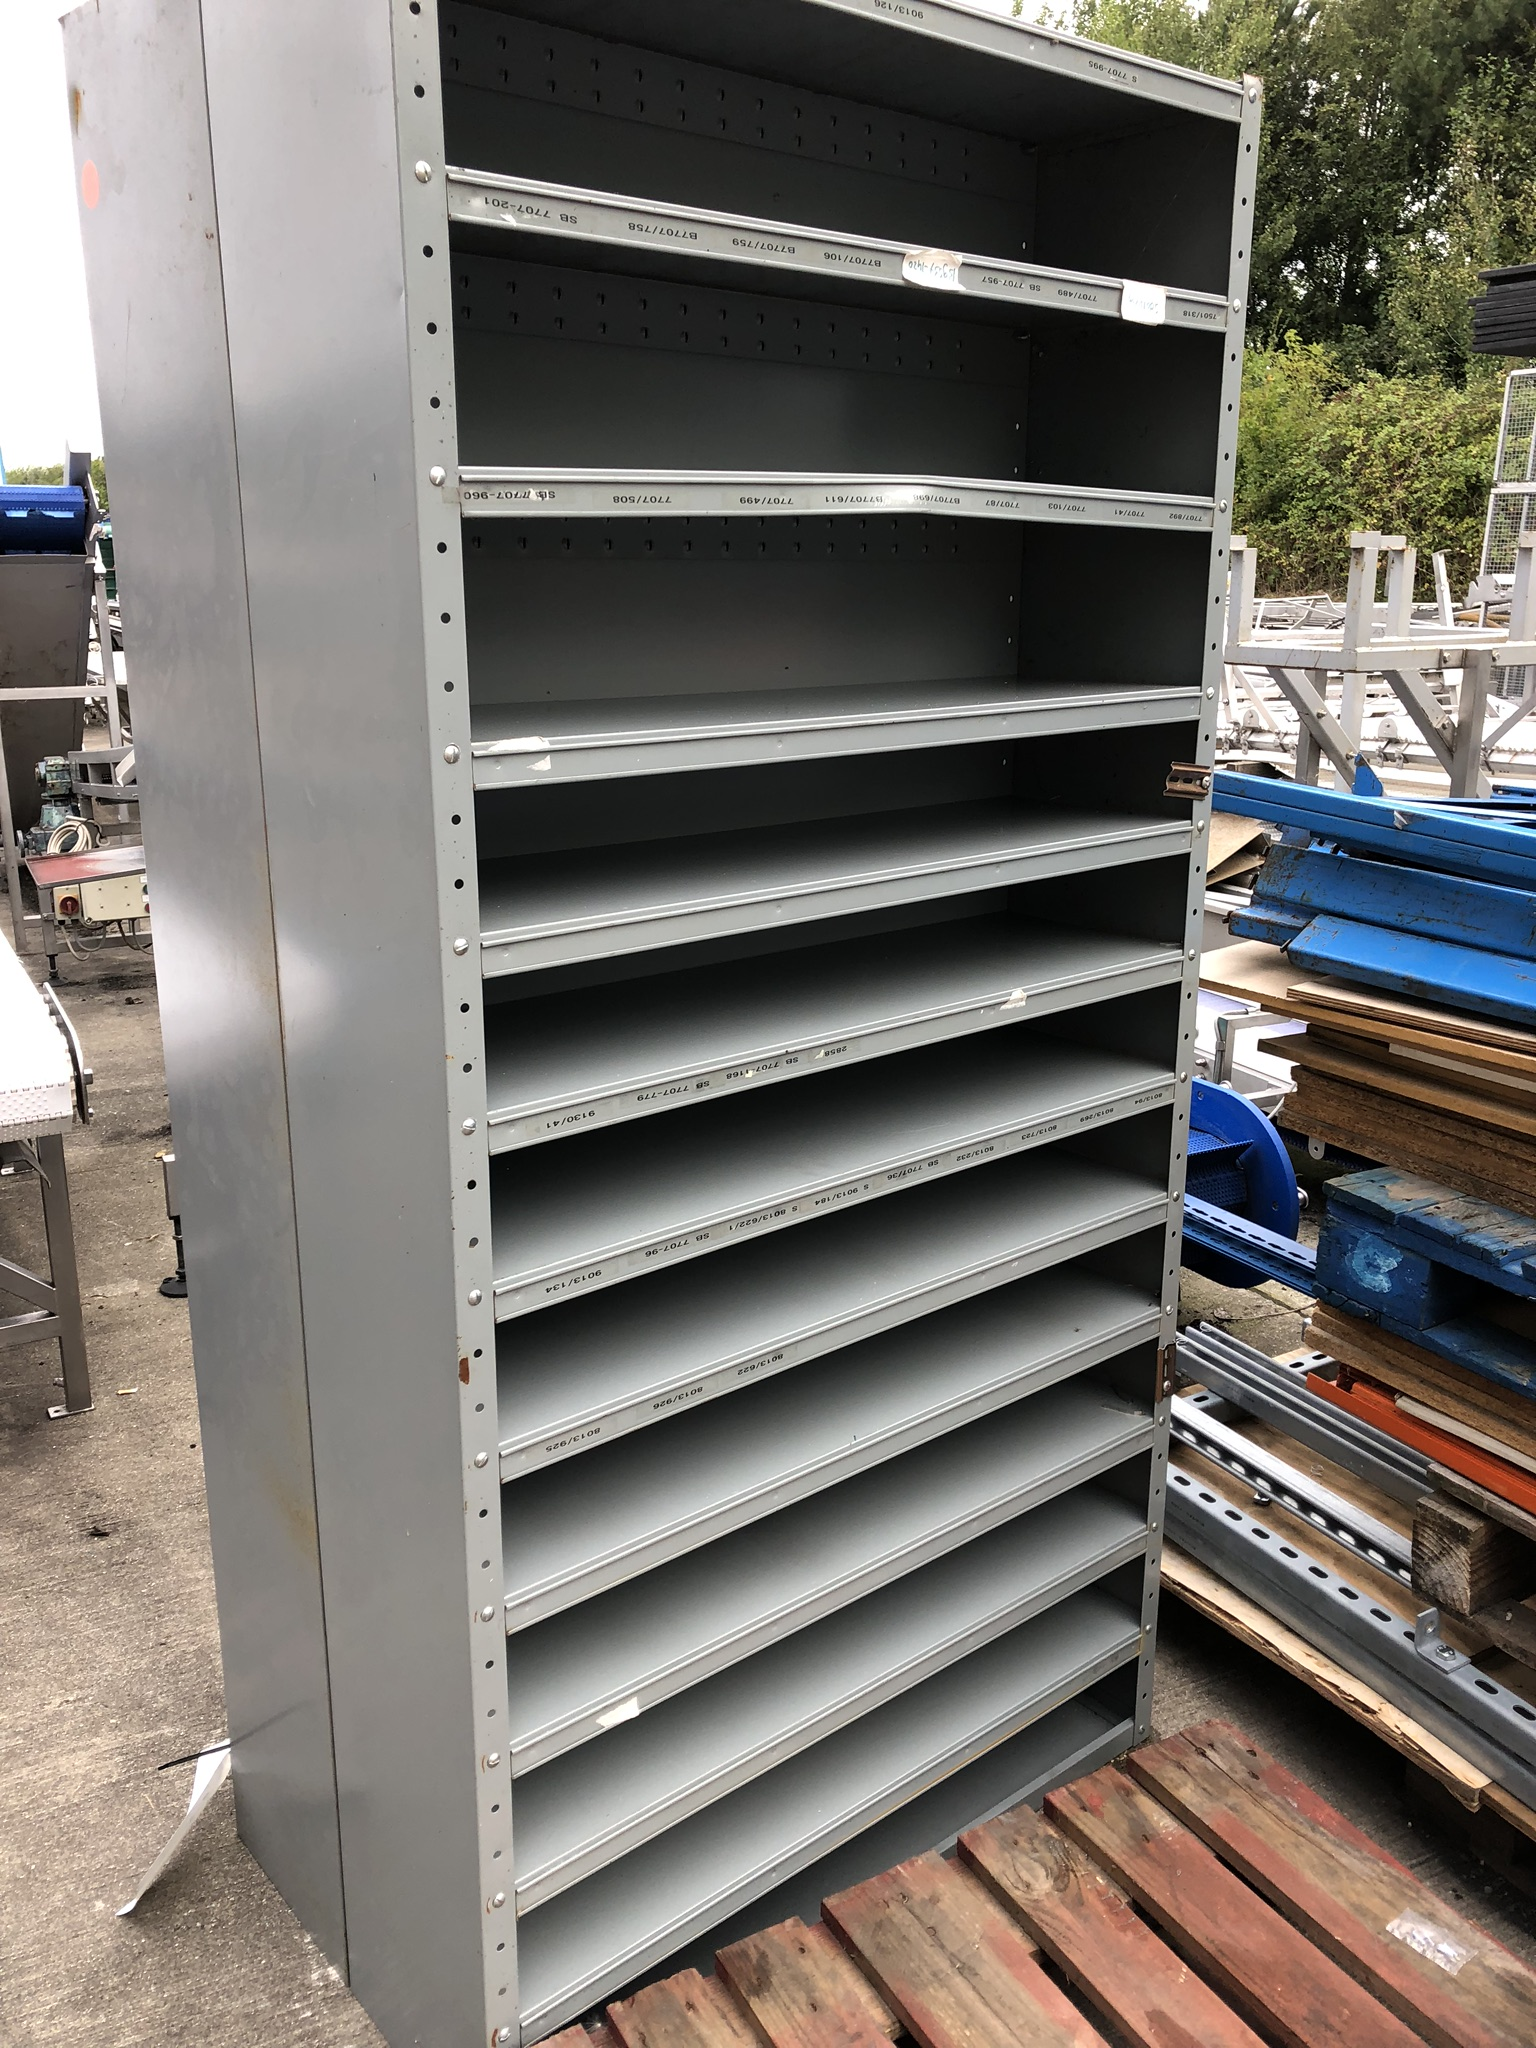 Two Eleven Tier Parts Shelves, 2m x 1m x 0.3m wide, lift out charge - £10 - Image 2 of 2